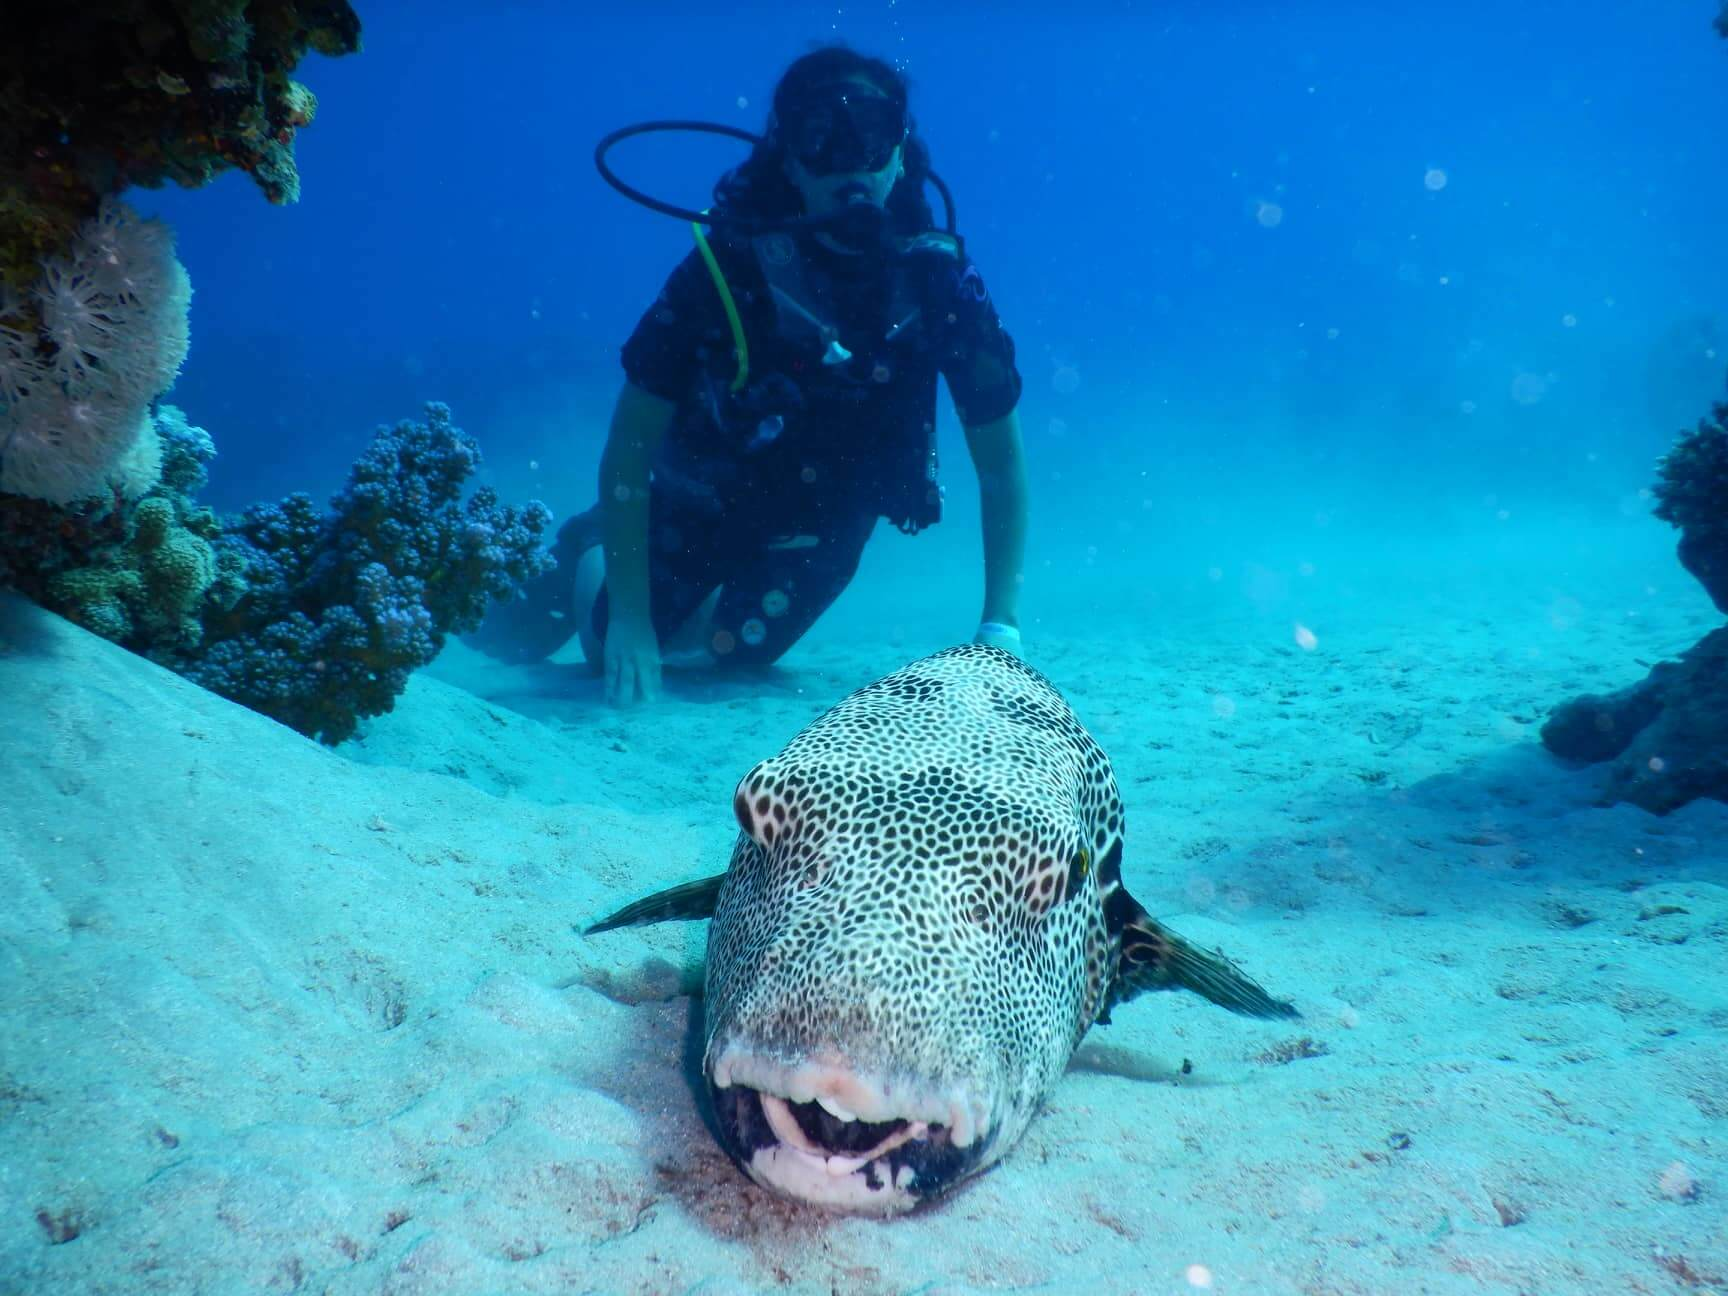 Egypt-REDSEA-Hurghada-Divepro-Academy-Diving-Center-Diver-with-Fish-and-House-Reef